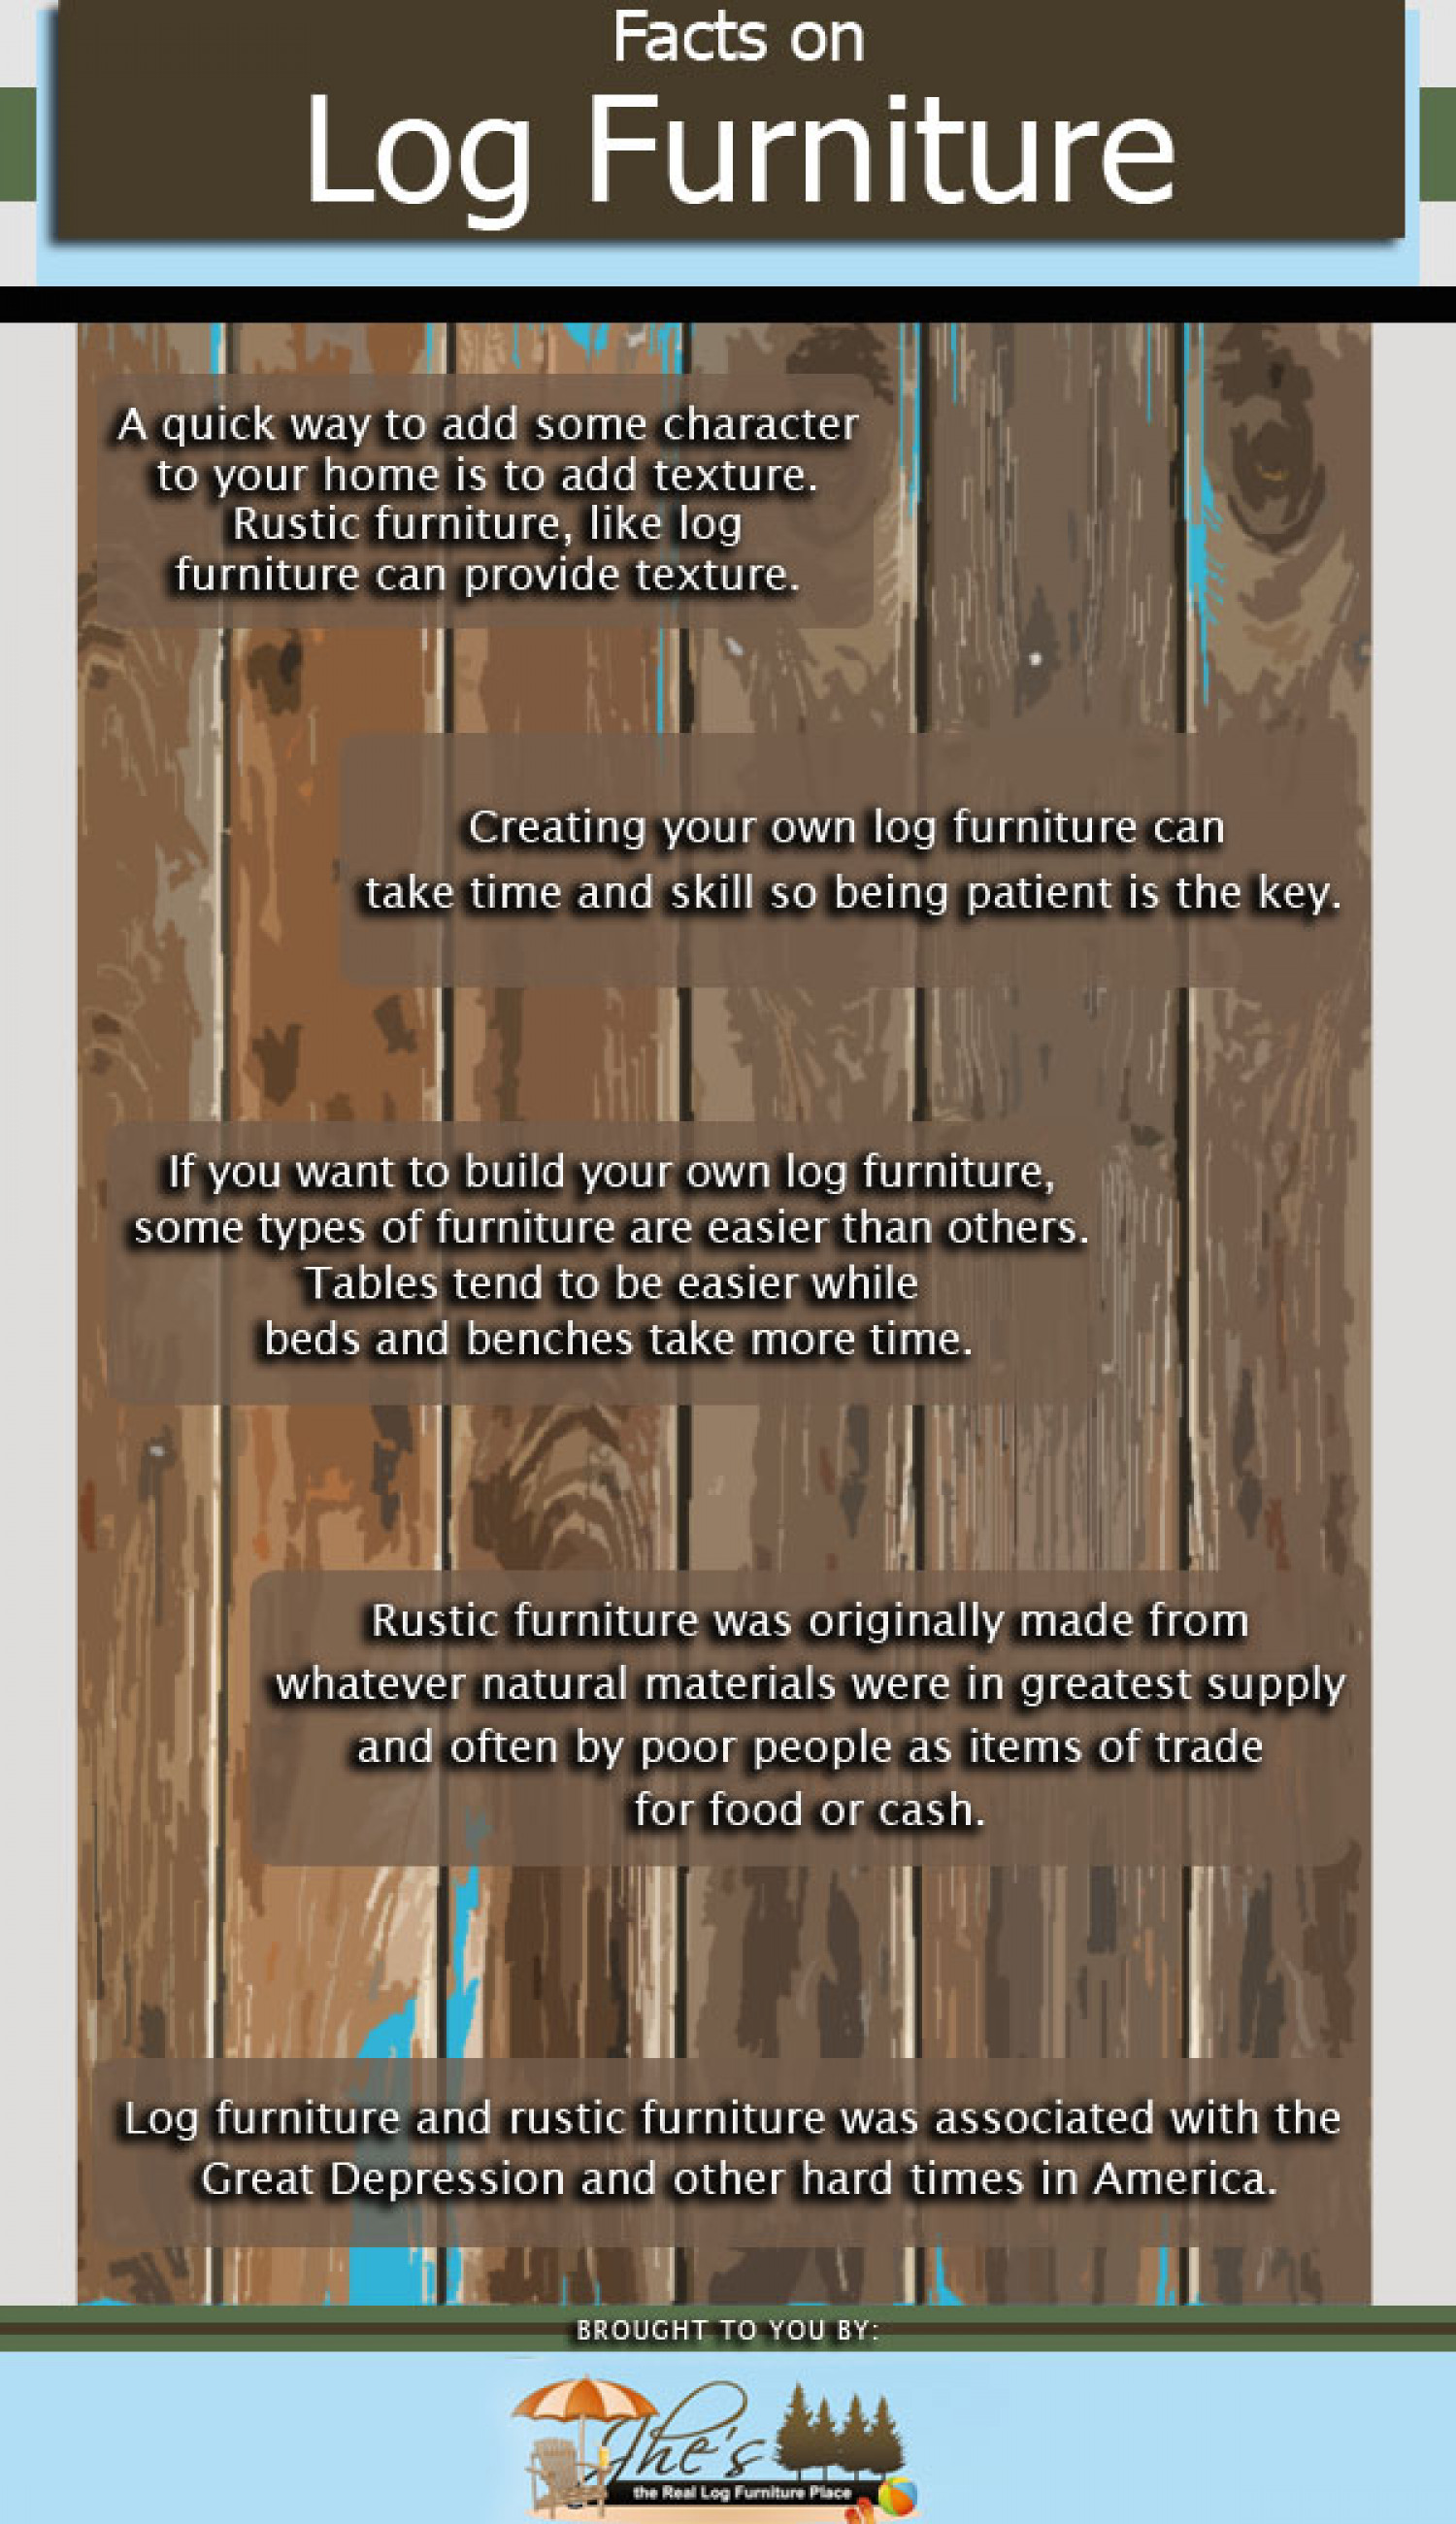 Facts on Log Furniture Infographic